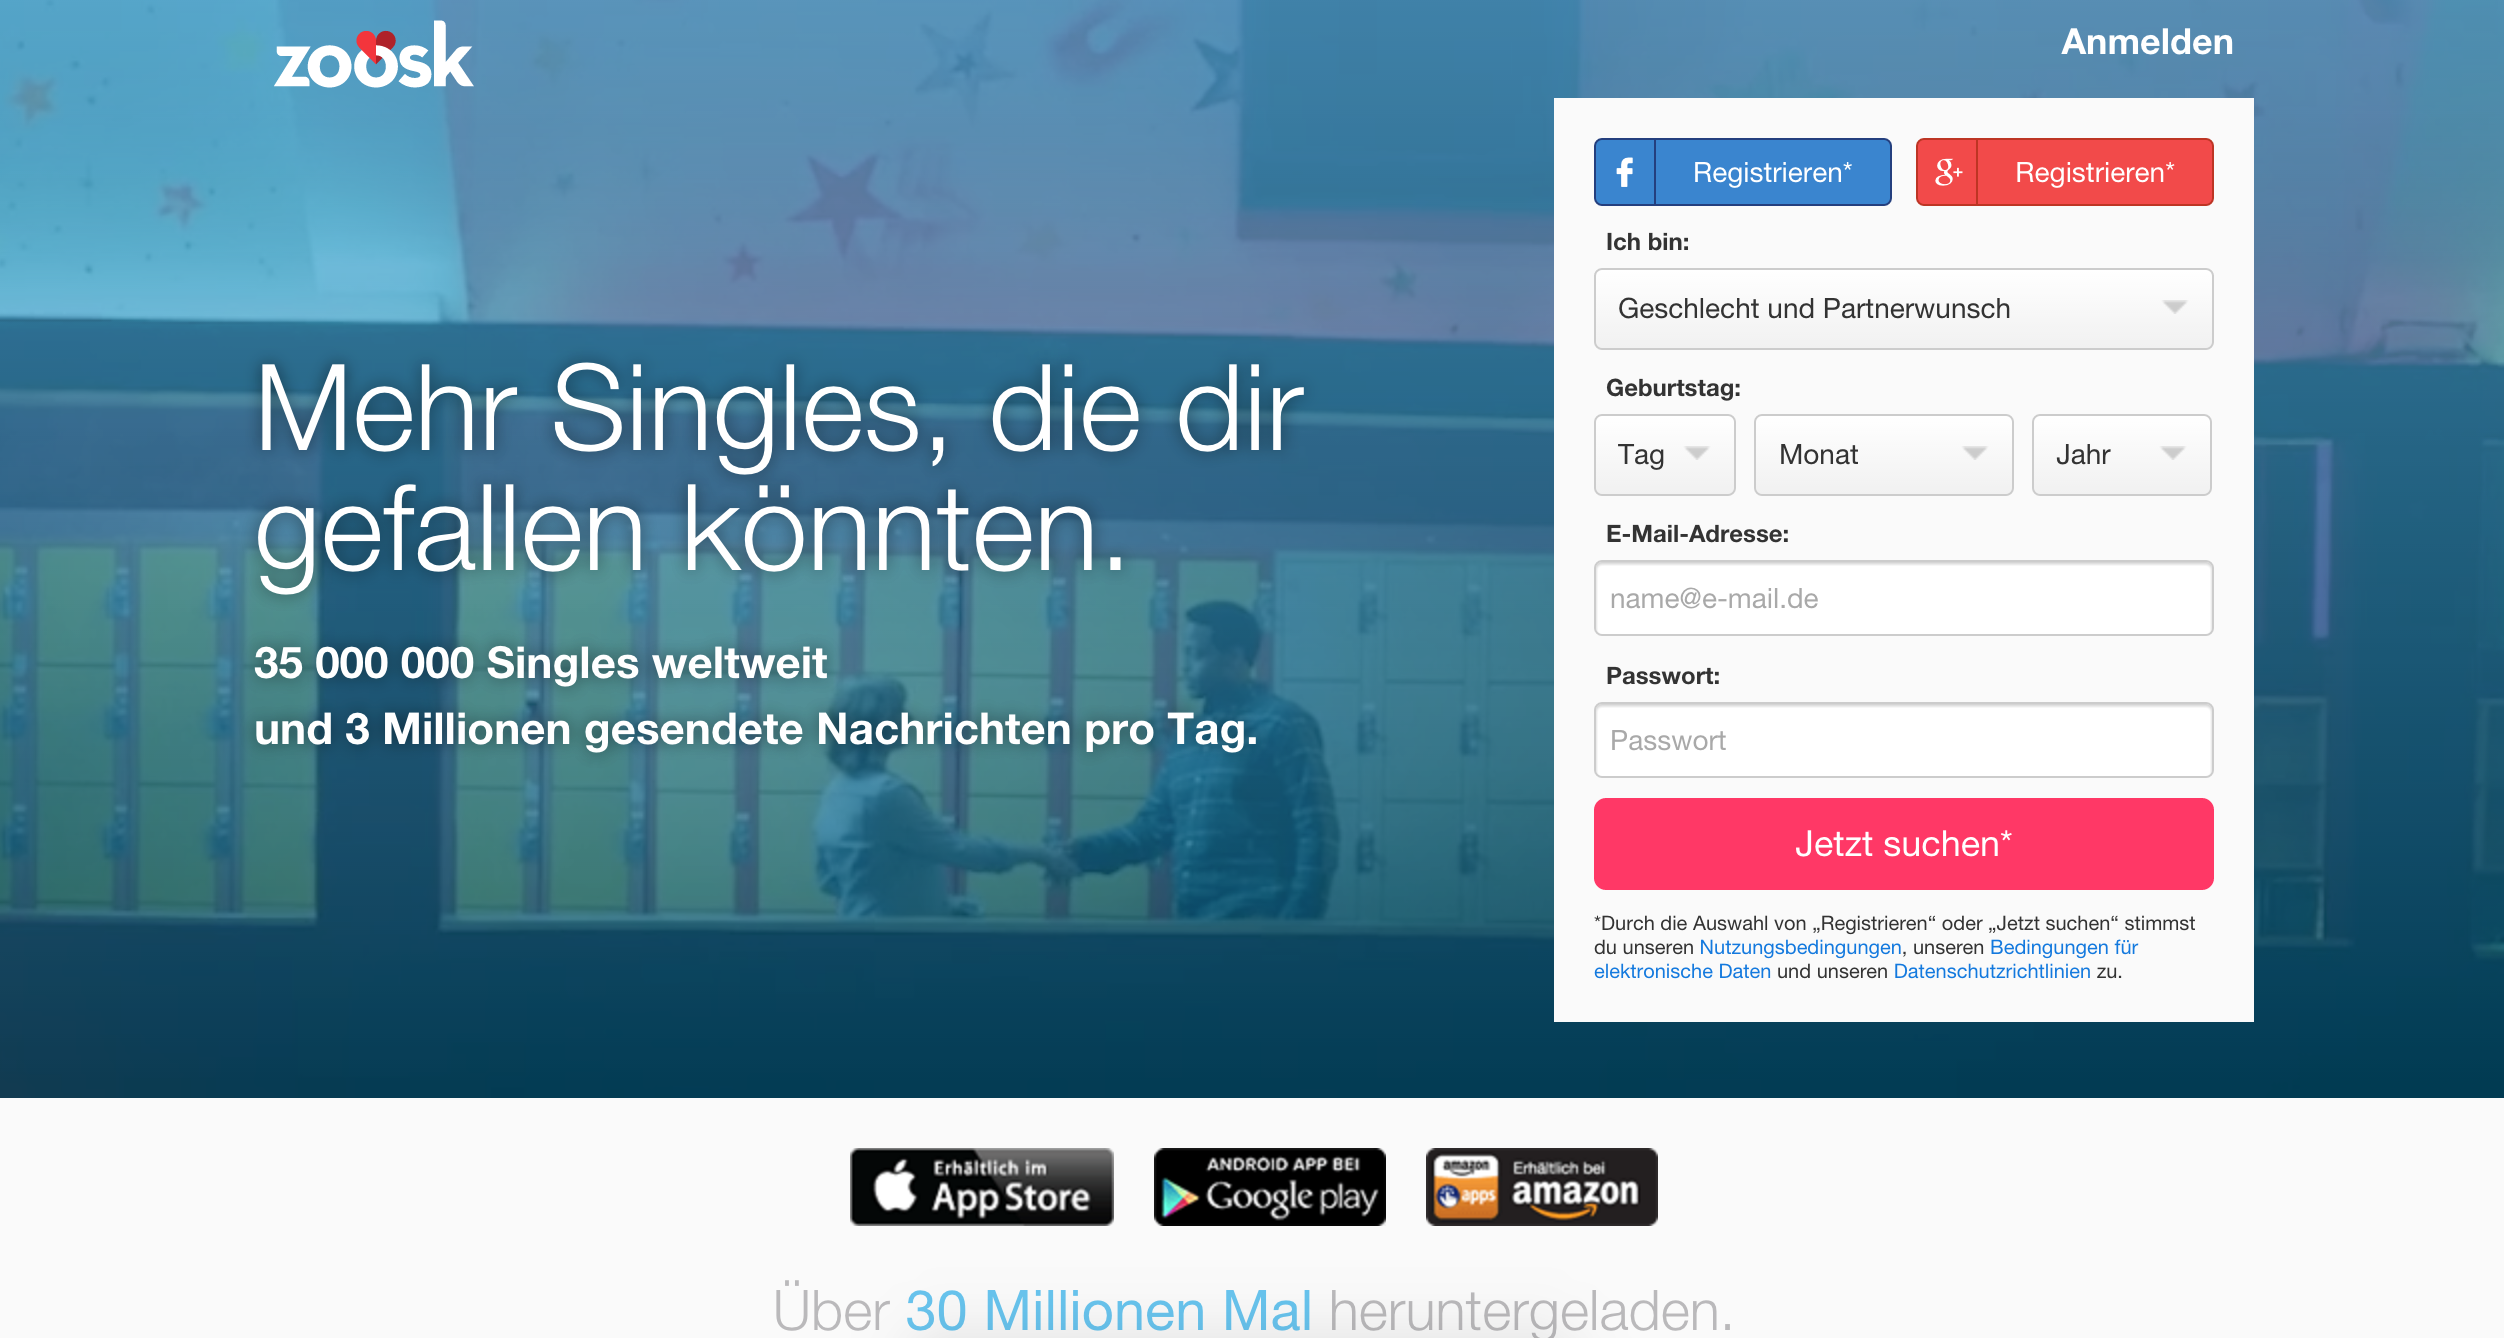 gering singles & personals Meet thousands of local gering singles, as the worlds largest dating site we make dating in gering easy plentyoffish is 100% free, unlike paid dating sites.